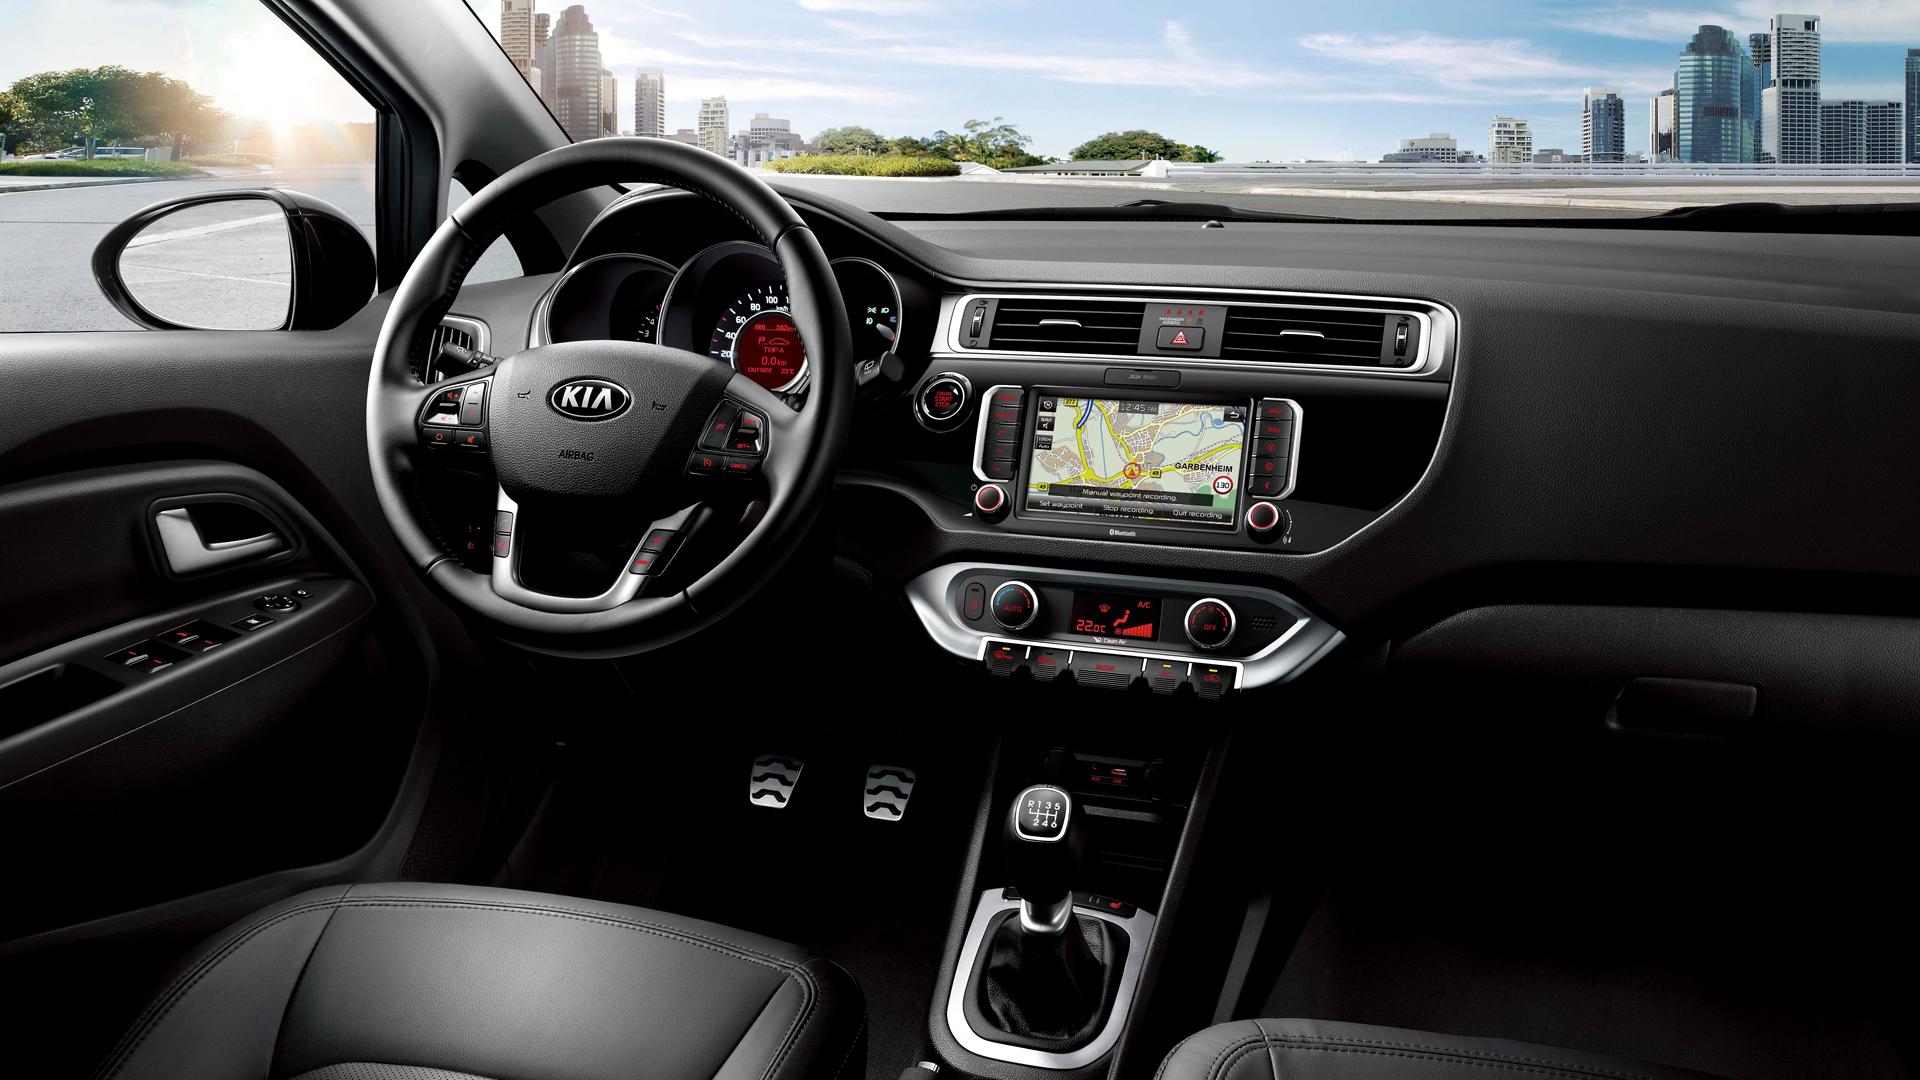 Kiariopemy1534dashboardviewblackleather608930830